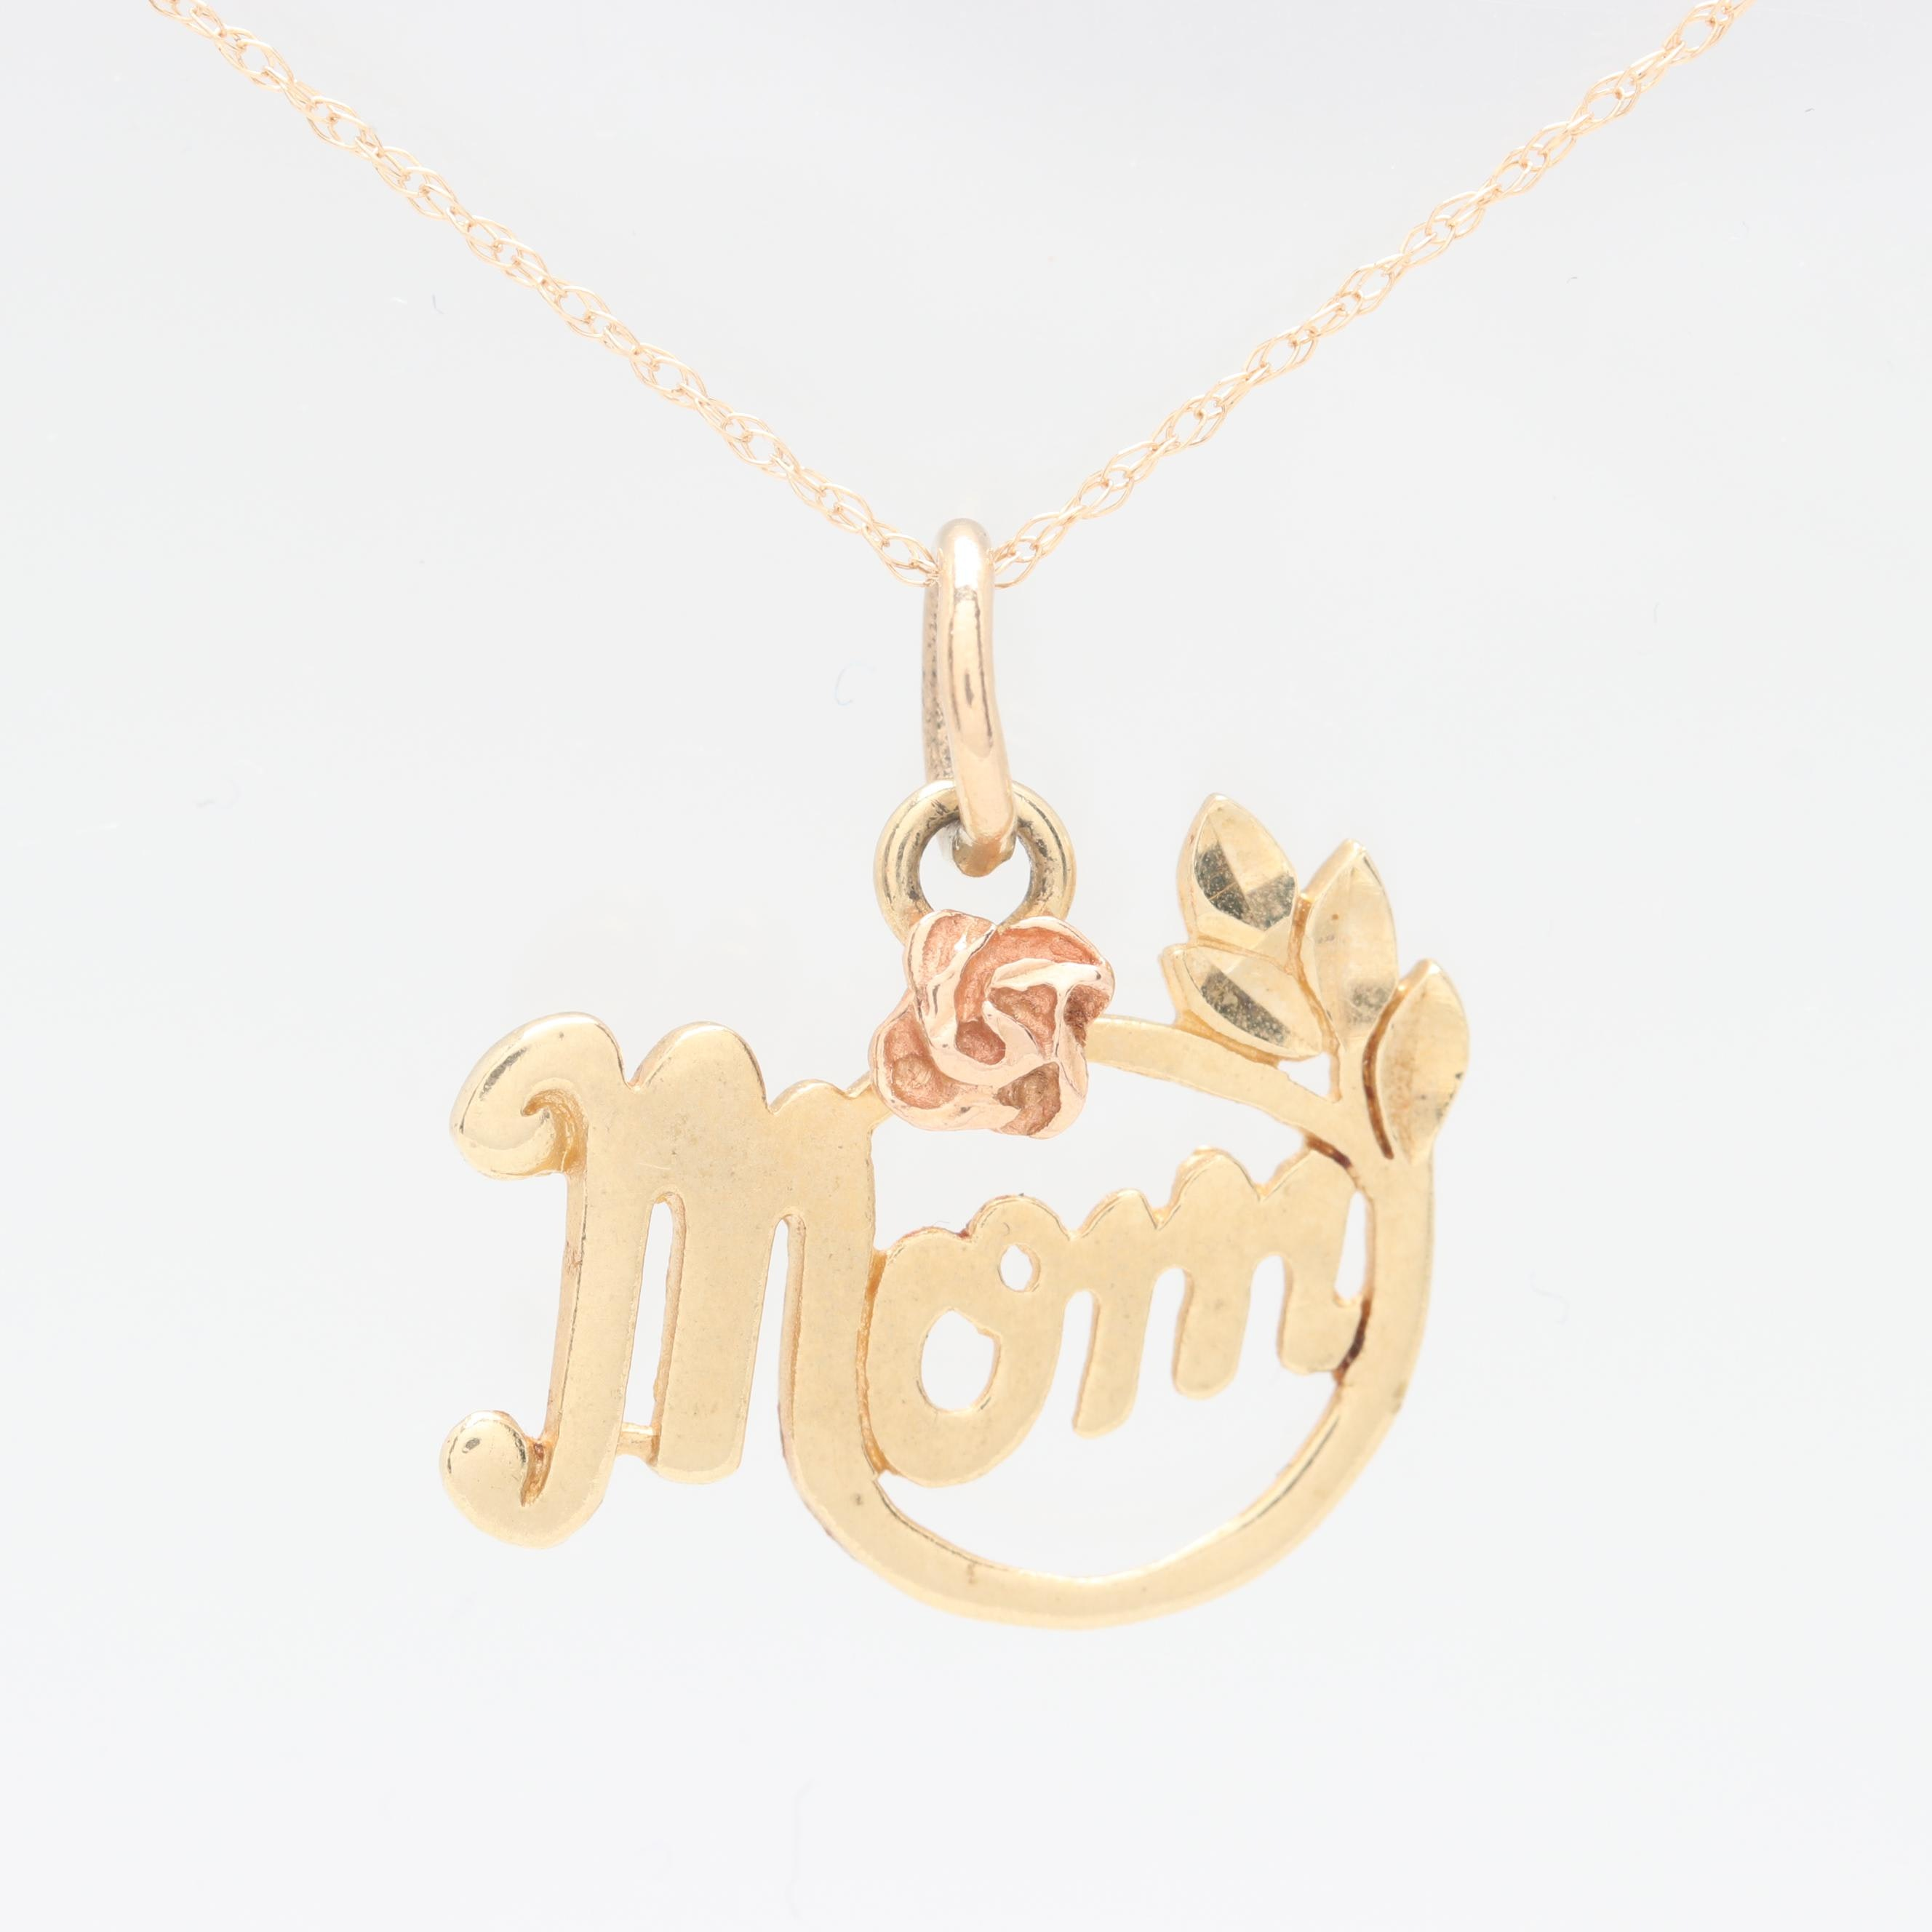 14K Yellow Gold and Rose Gold Accent Pendant Necklace